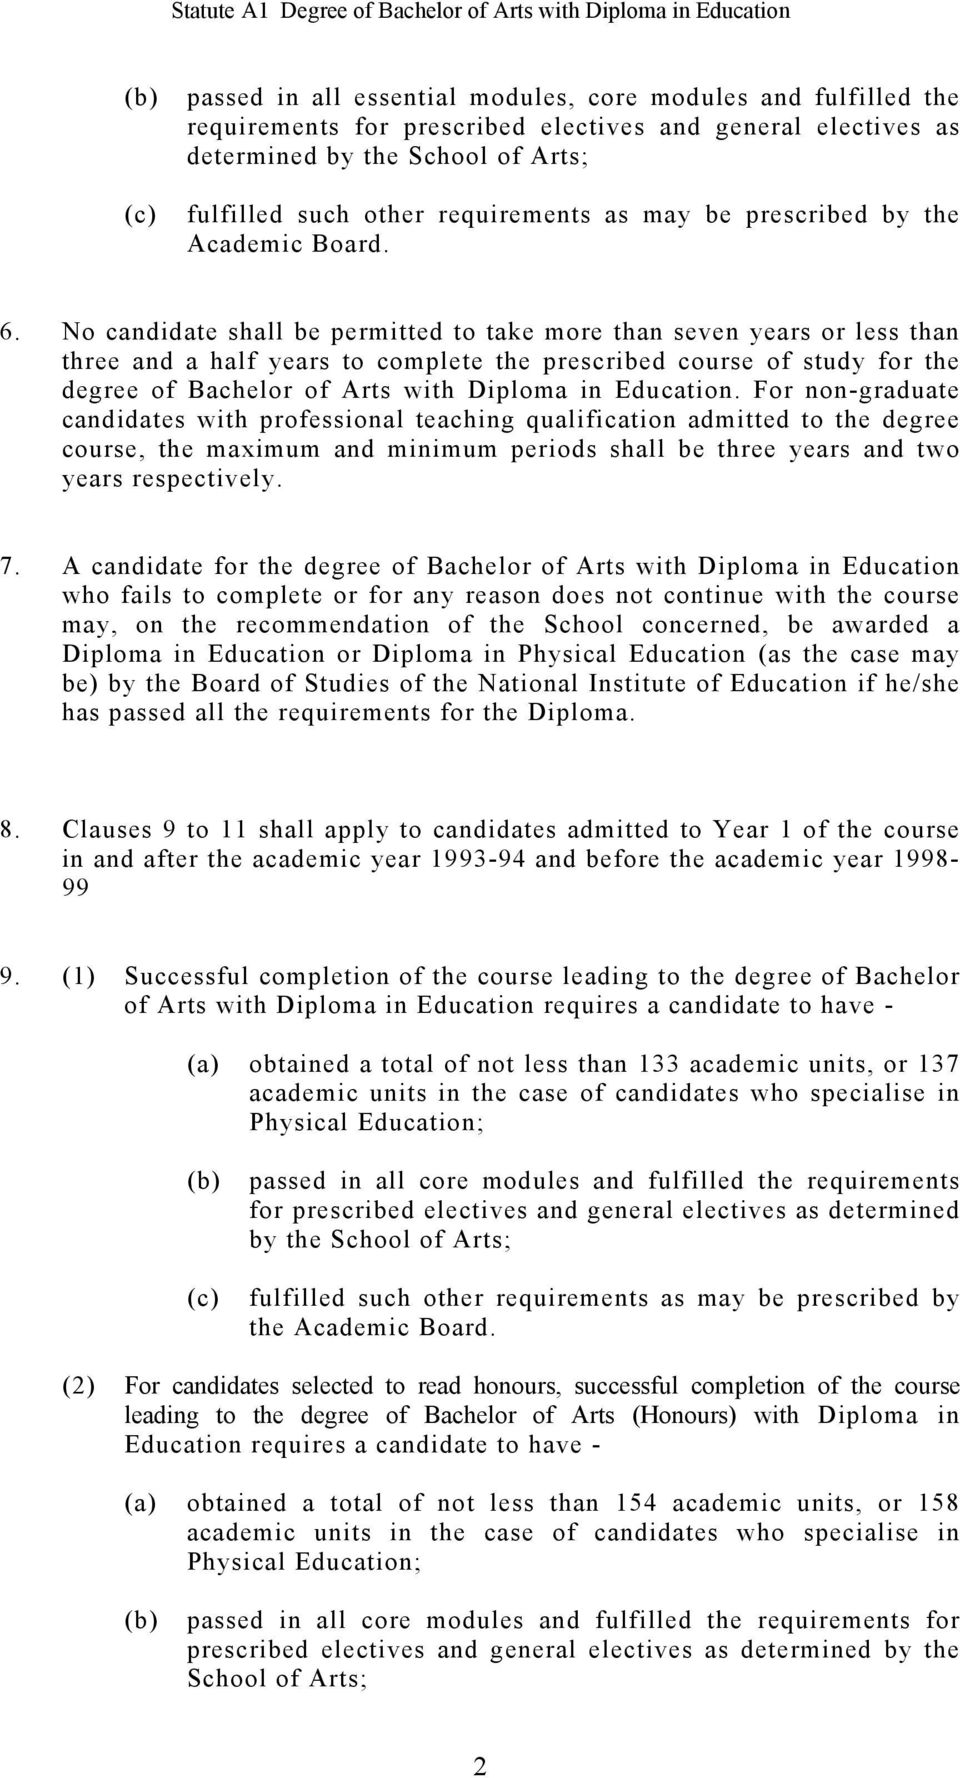 No candidate shall be permitted to take more than seven years or less than three and a half years to complete the prescribed course of study for the degree of Bachelor of Arts with Diploma in